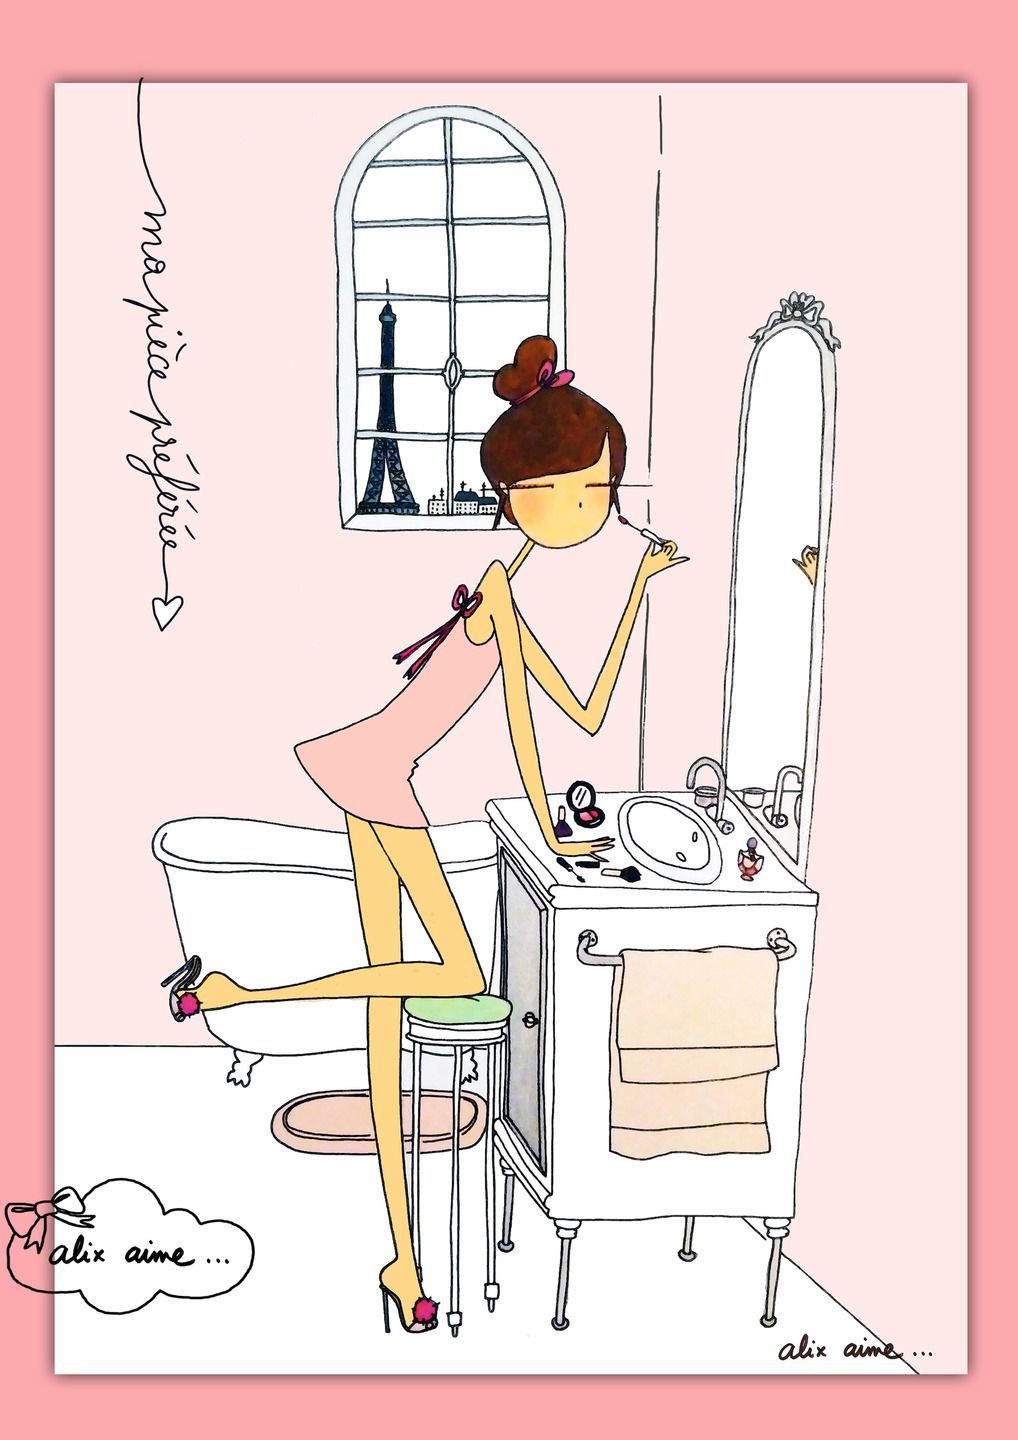 Illustration Ma Salle De Bain Drawings Artwork And Fashion - Dessiner ma salle de bain